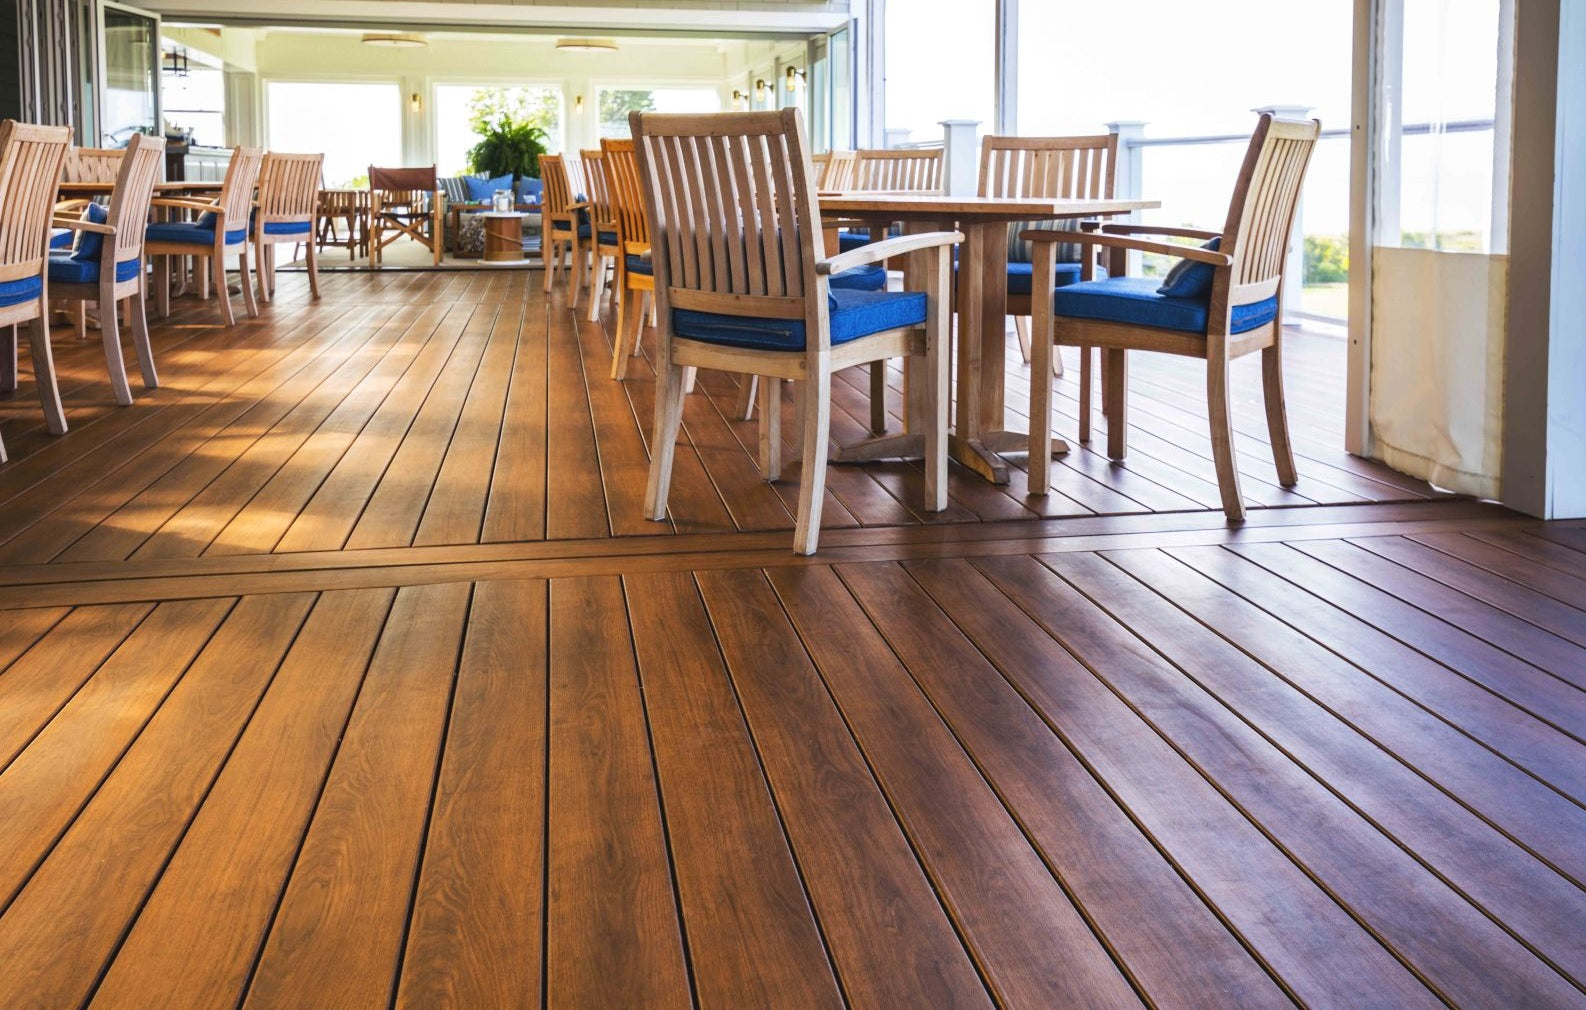 Zuri PVC non-wood Decking, Looks just like real wood without the drawbacks!